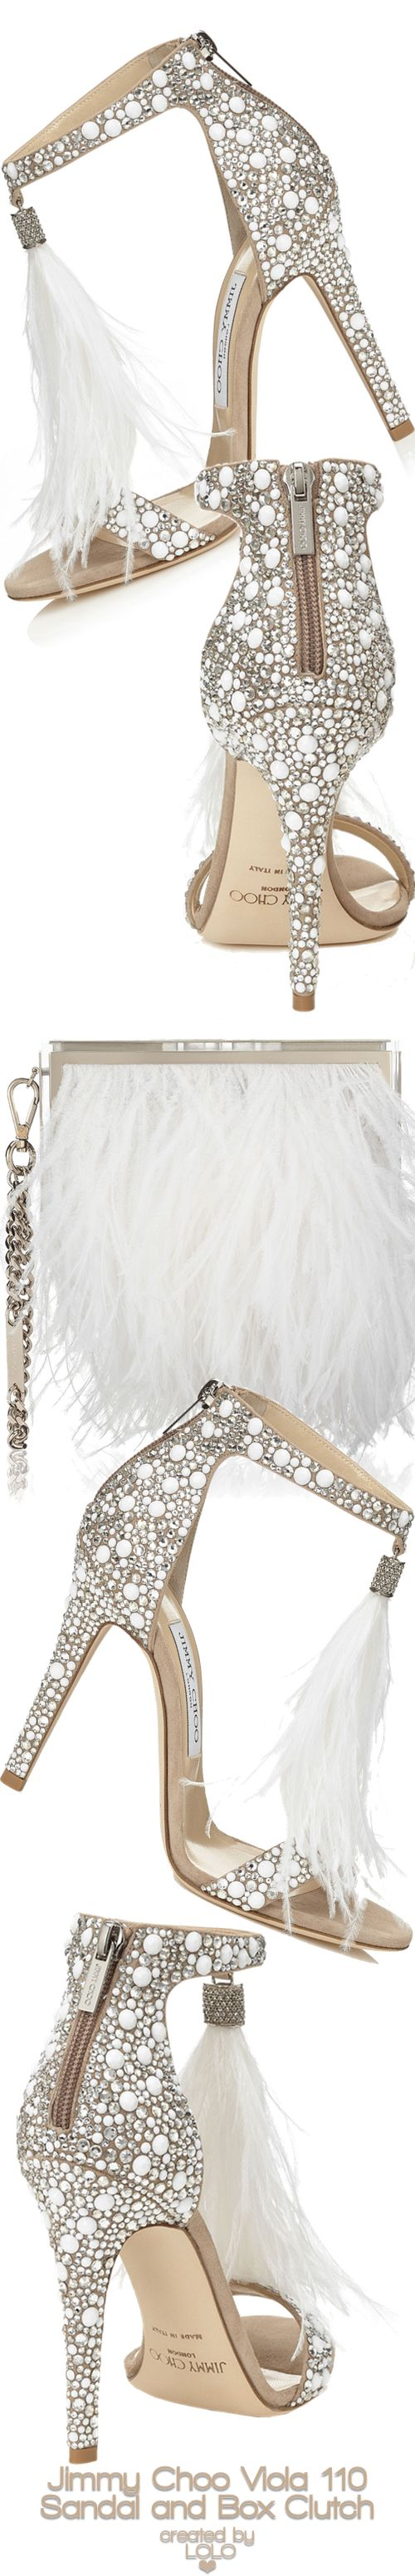 Jimmy Choo Viola 110 and Ostrich Feather Box Clutch | LOLO❤︎